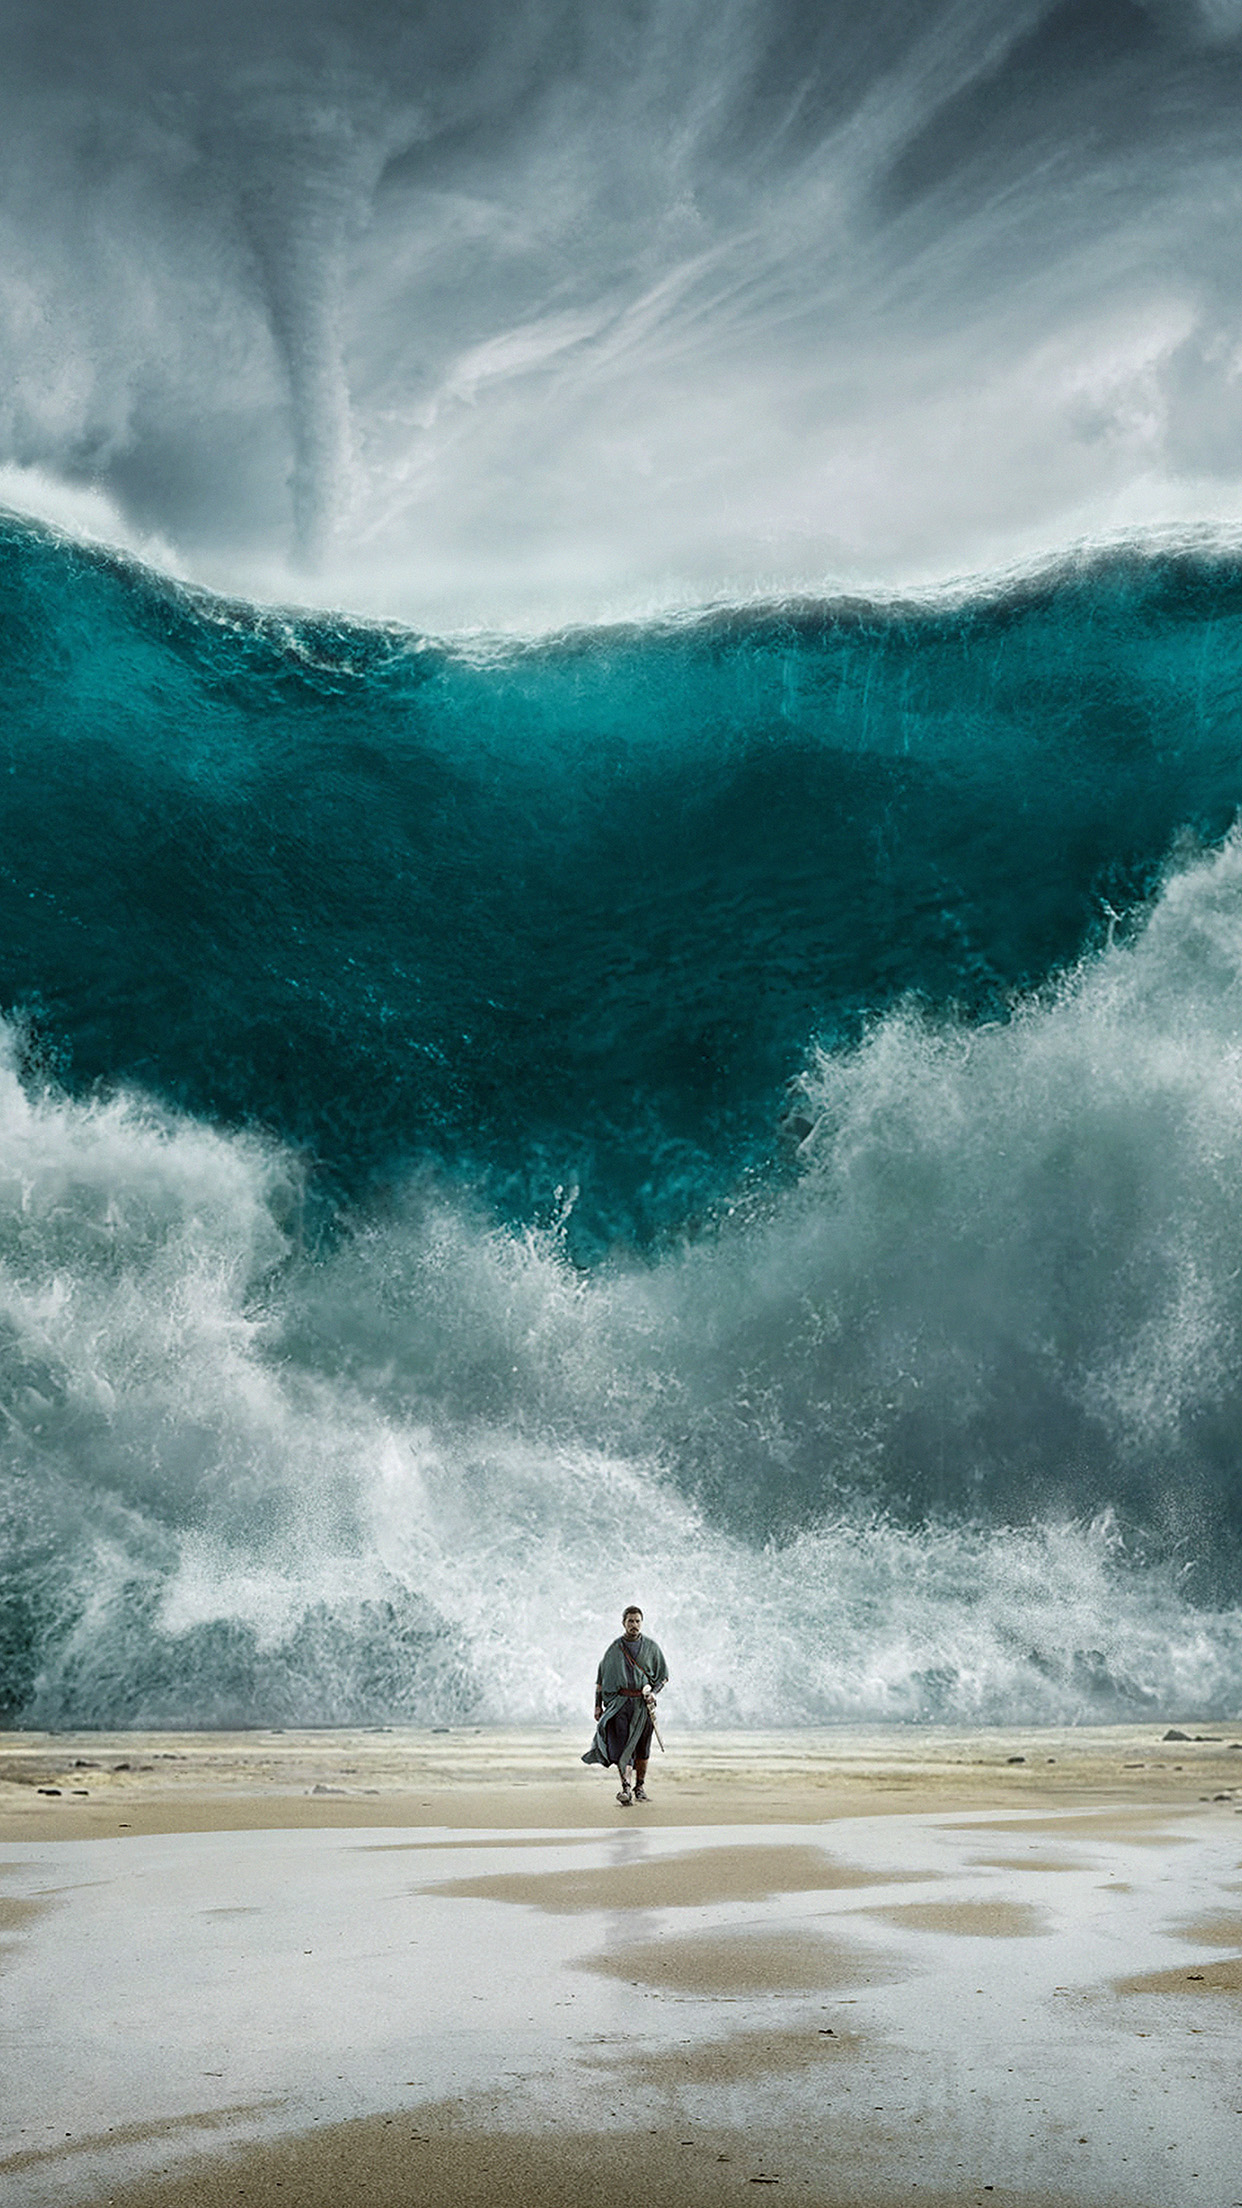 Ao52 exodus wave sea art film illust - Classic art wallpaper iphone 5 ...